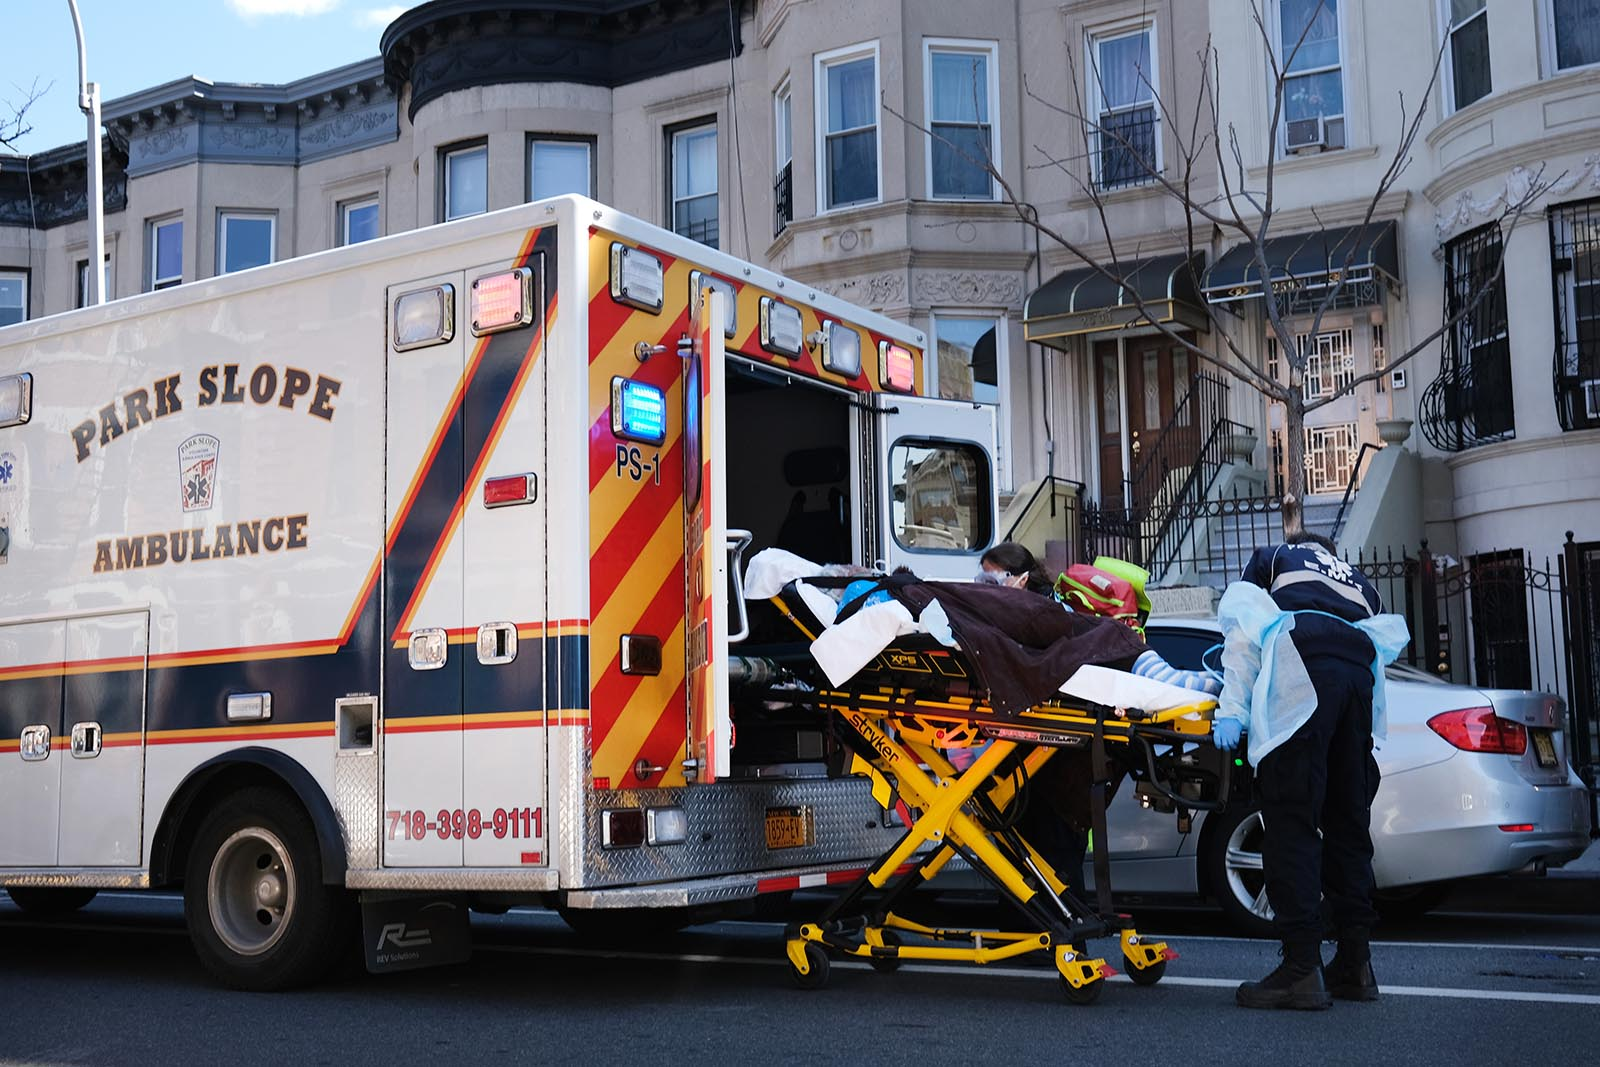 Health workers carry a patient to an ambulance on April 11, 2020 in the Brooklyn borough of New York City.